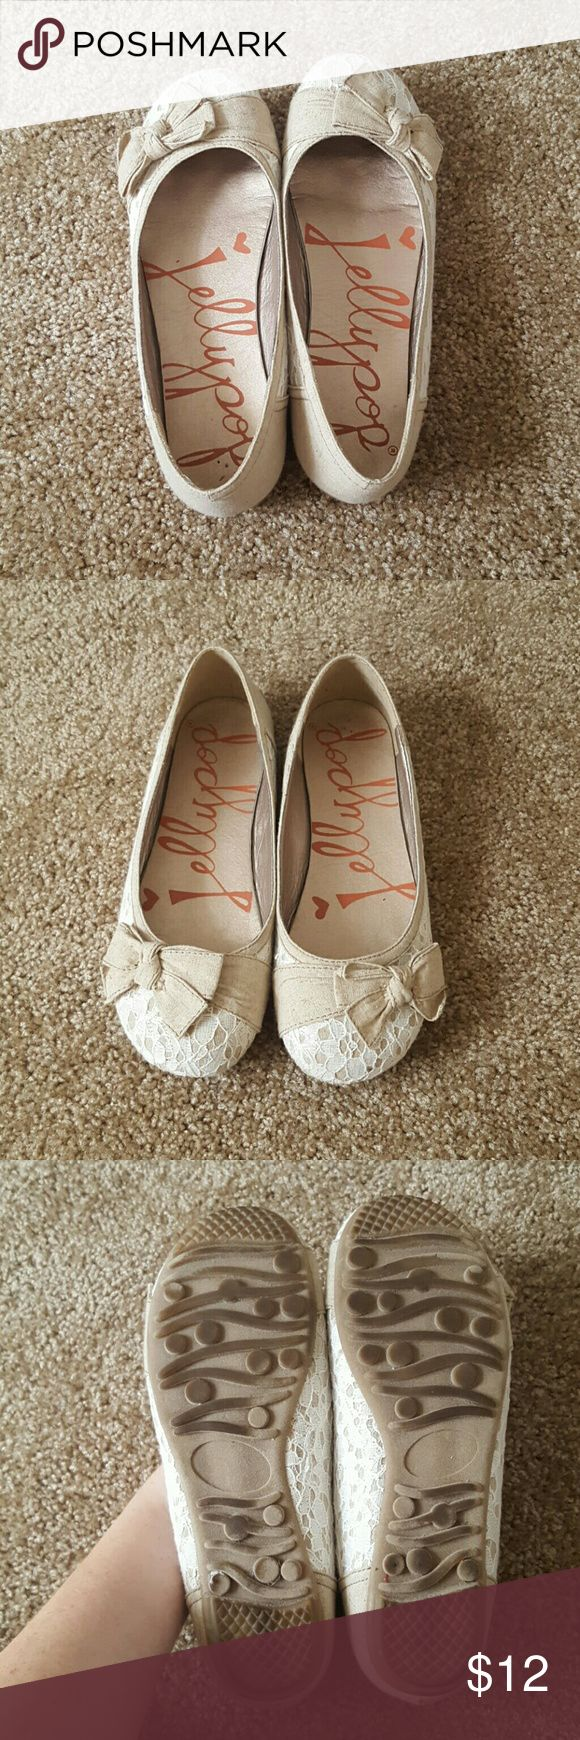 Tan Jellypop Flats New. Worn once. Good condition. Jellypop   Shoes Flats & Loafers